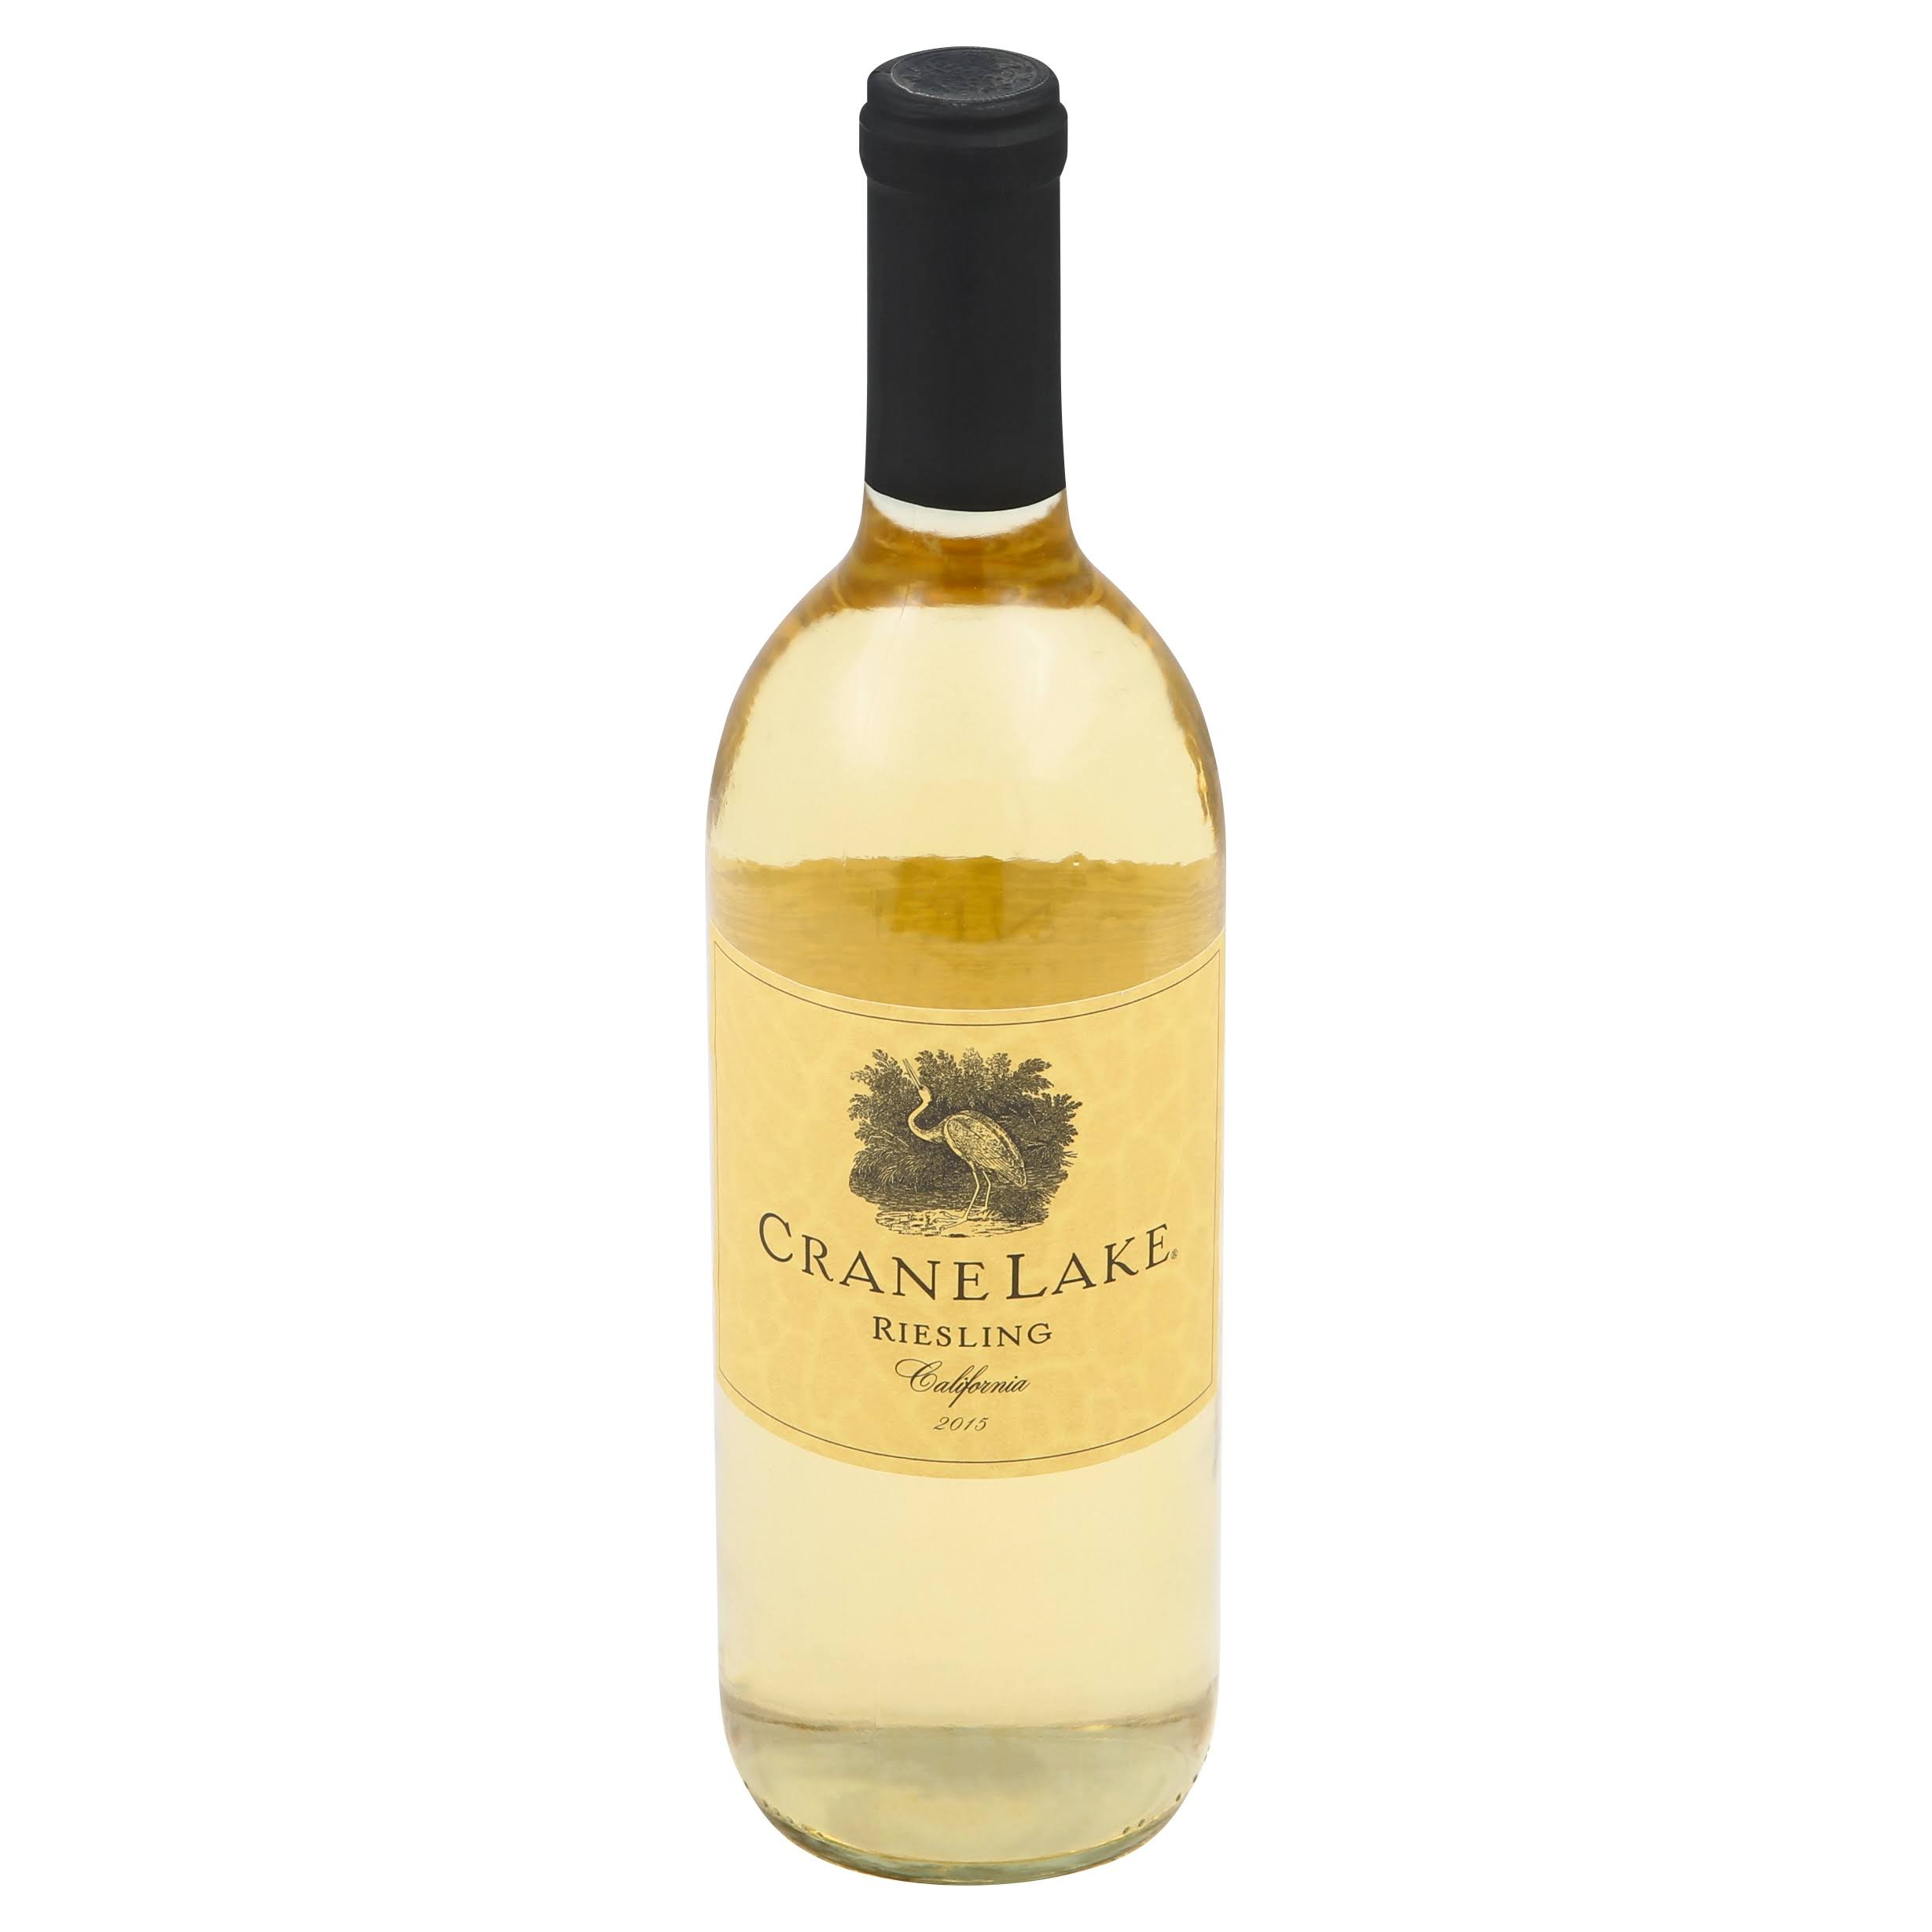 Crane Lake Riesling, California, 2015 - 750 ml